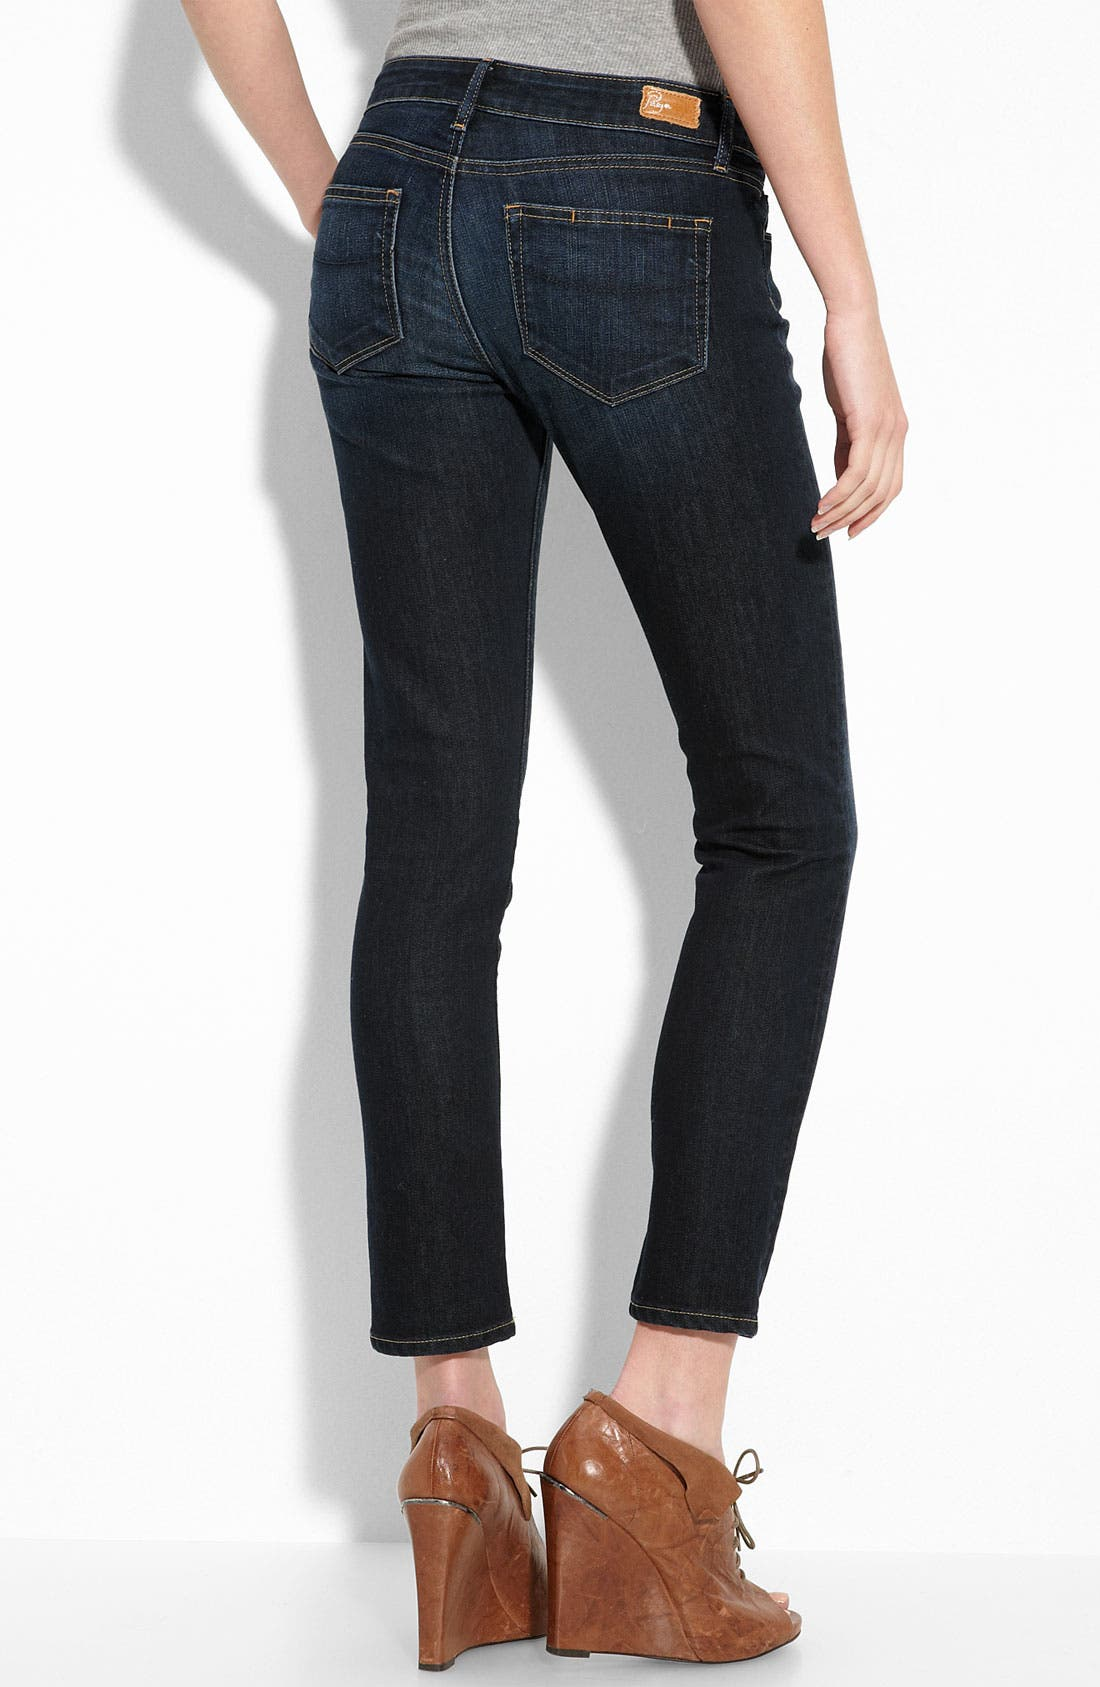 Denim 'Skyline' Ankle Peg Skinny Stretch Jeans,                             Alternate thumbnail 2, color,                             Super Rebellious